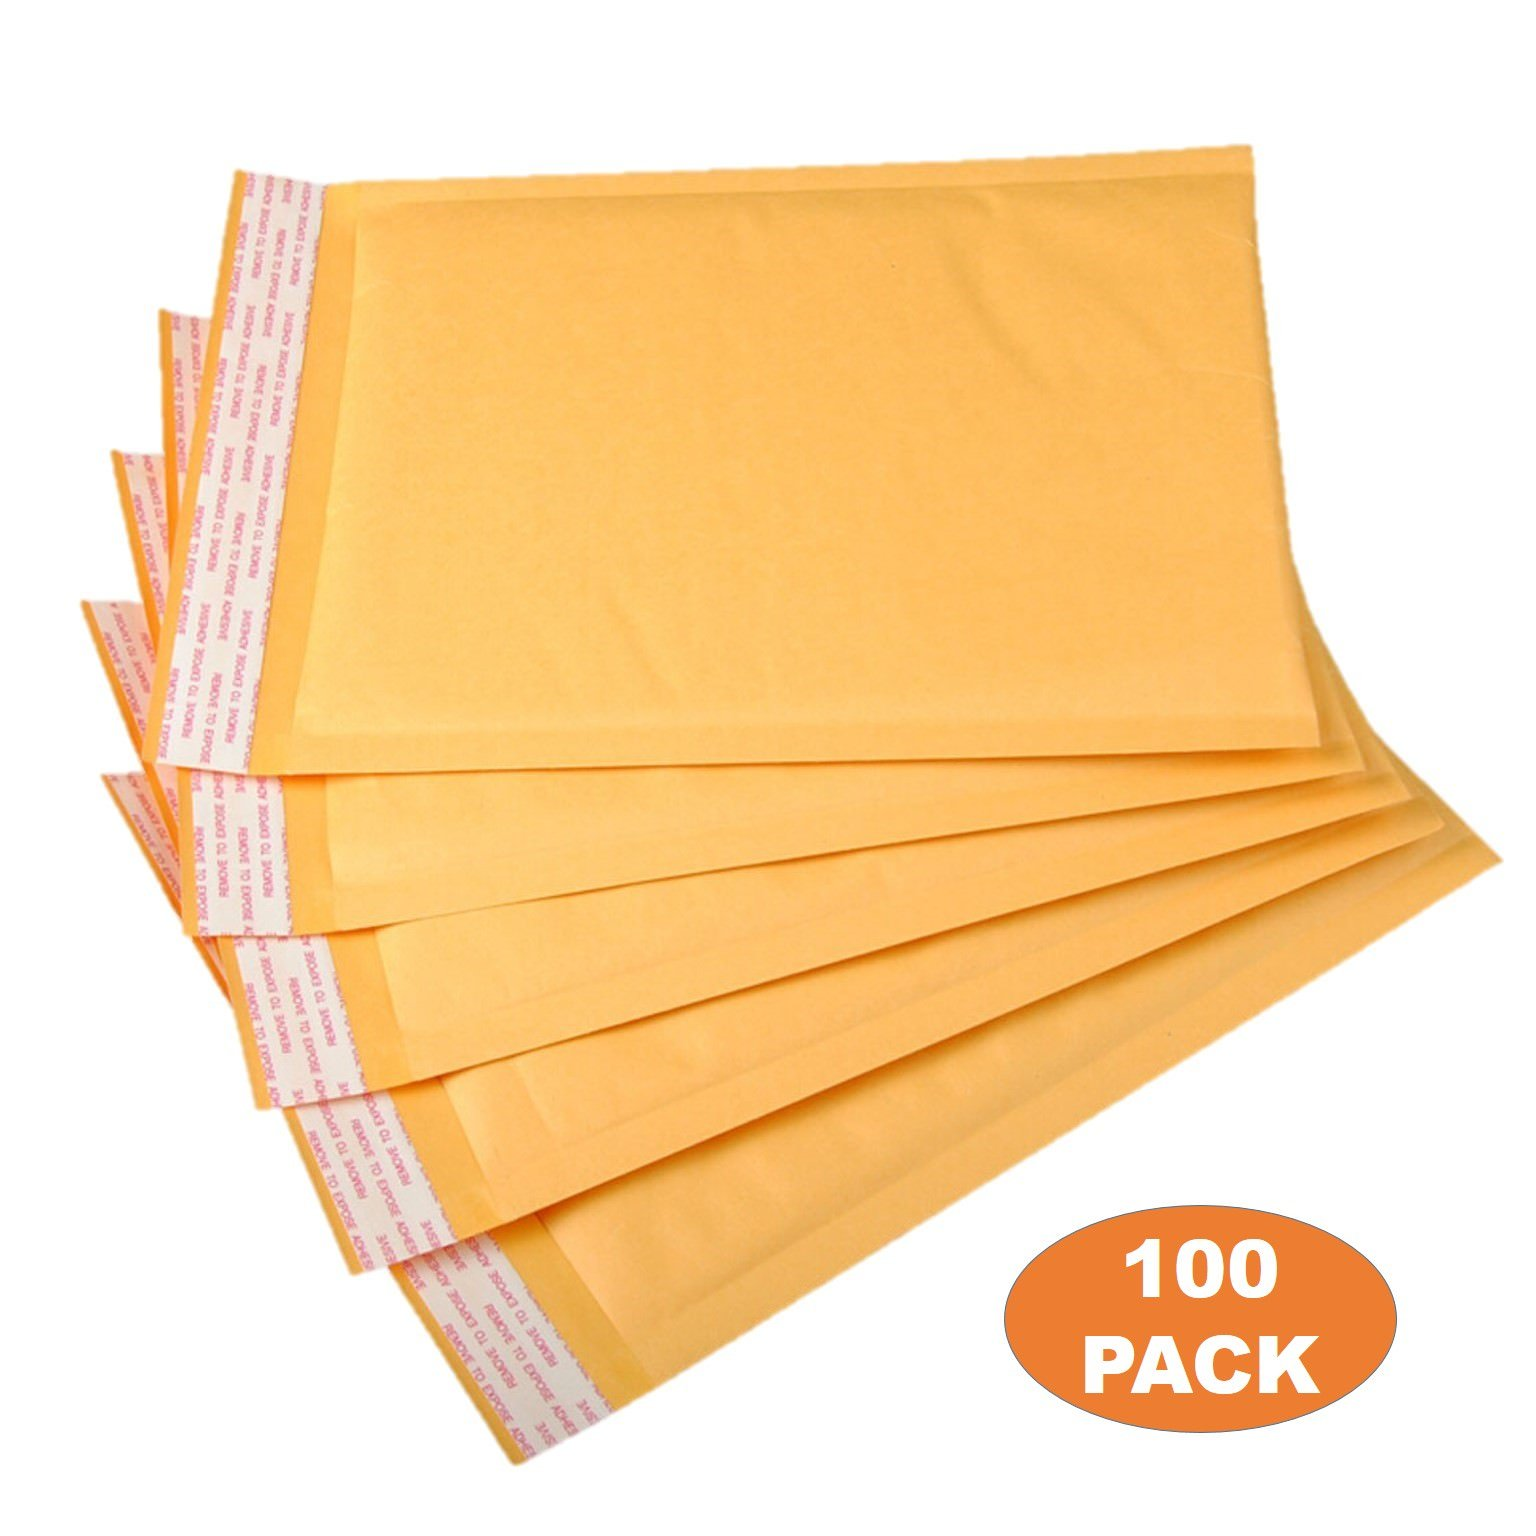 OfficeKit Kraft Bubble Mailers #0 6X10 Inches Shipping Padded Envelopes Self Seal Cushioned Mailing Envelope Bags 100 PACK